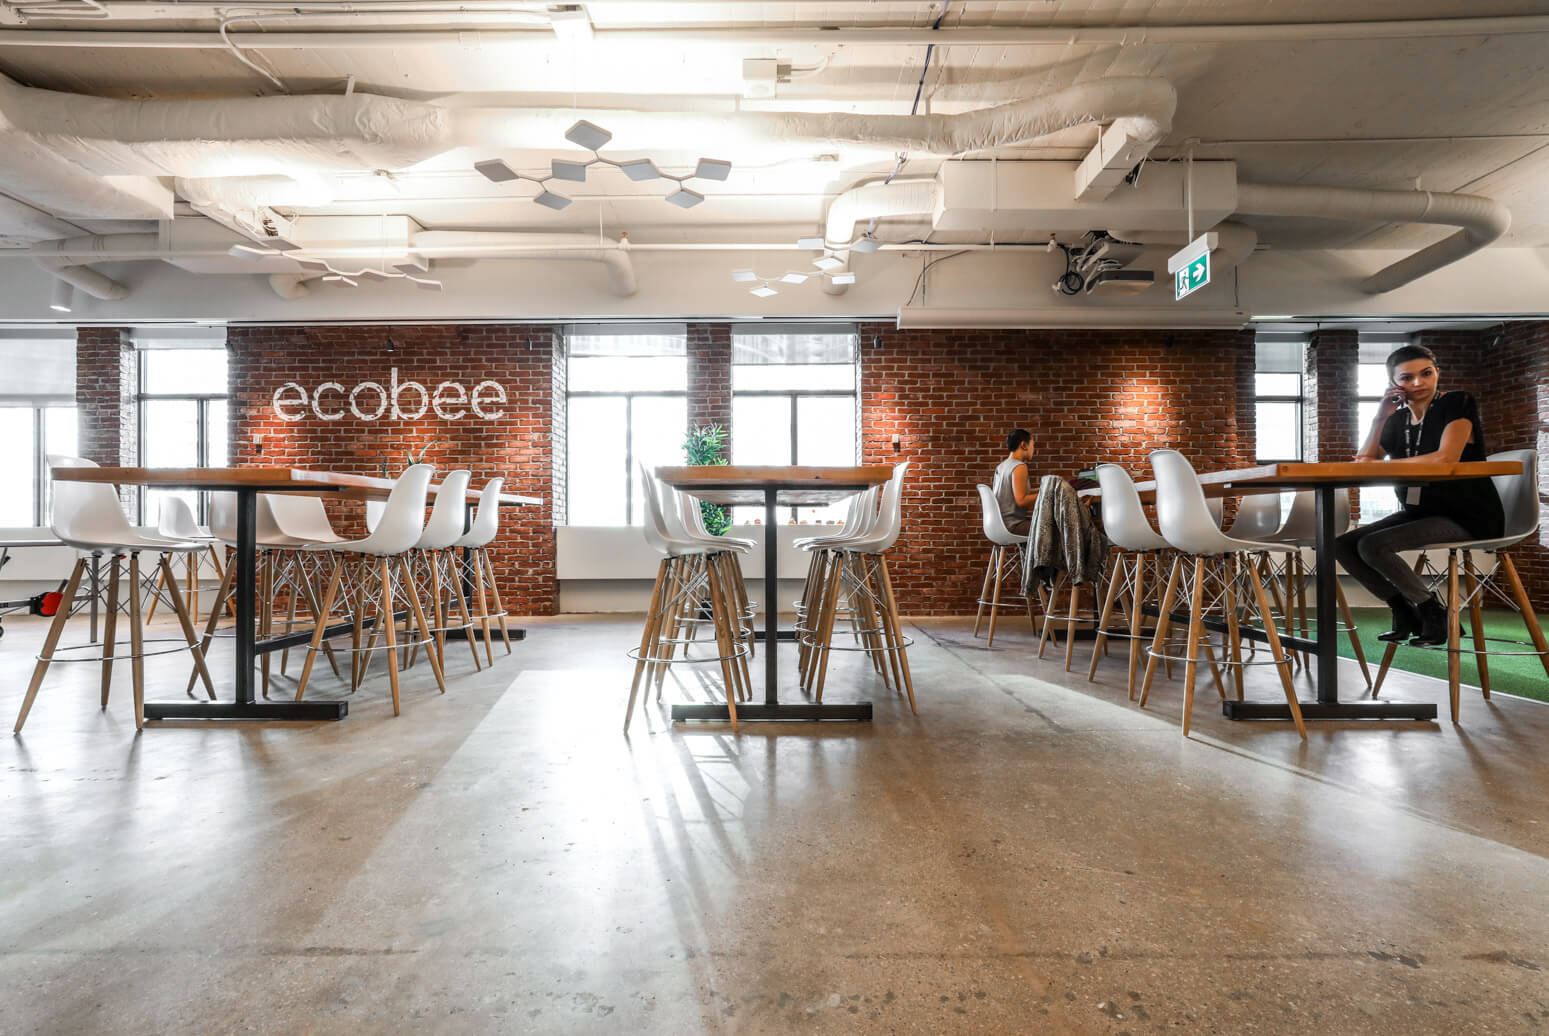 Ecobee Toronto Office Killer Spaces-11